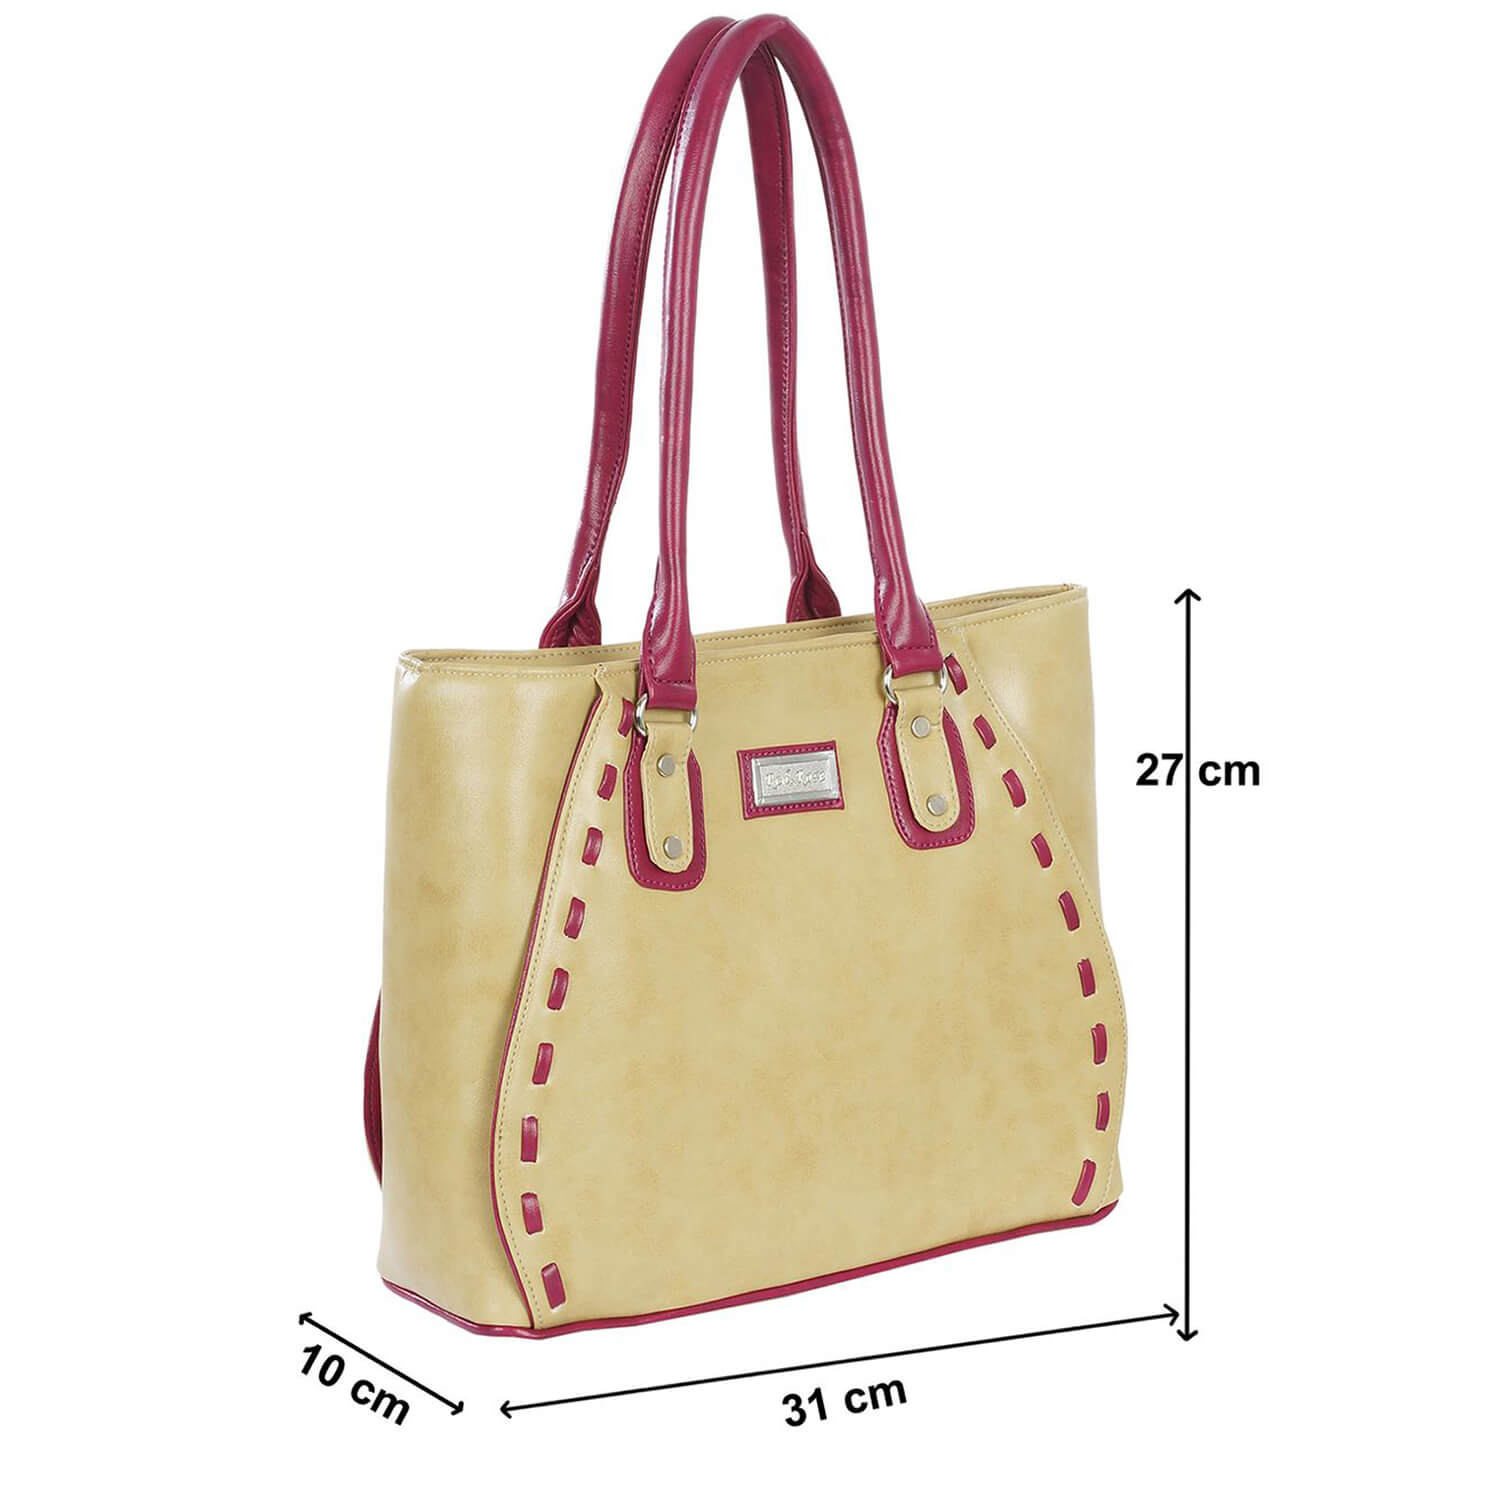 Right Choice RCH293 flashy designer women's handbags(Beige)